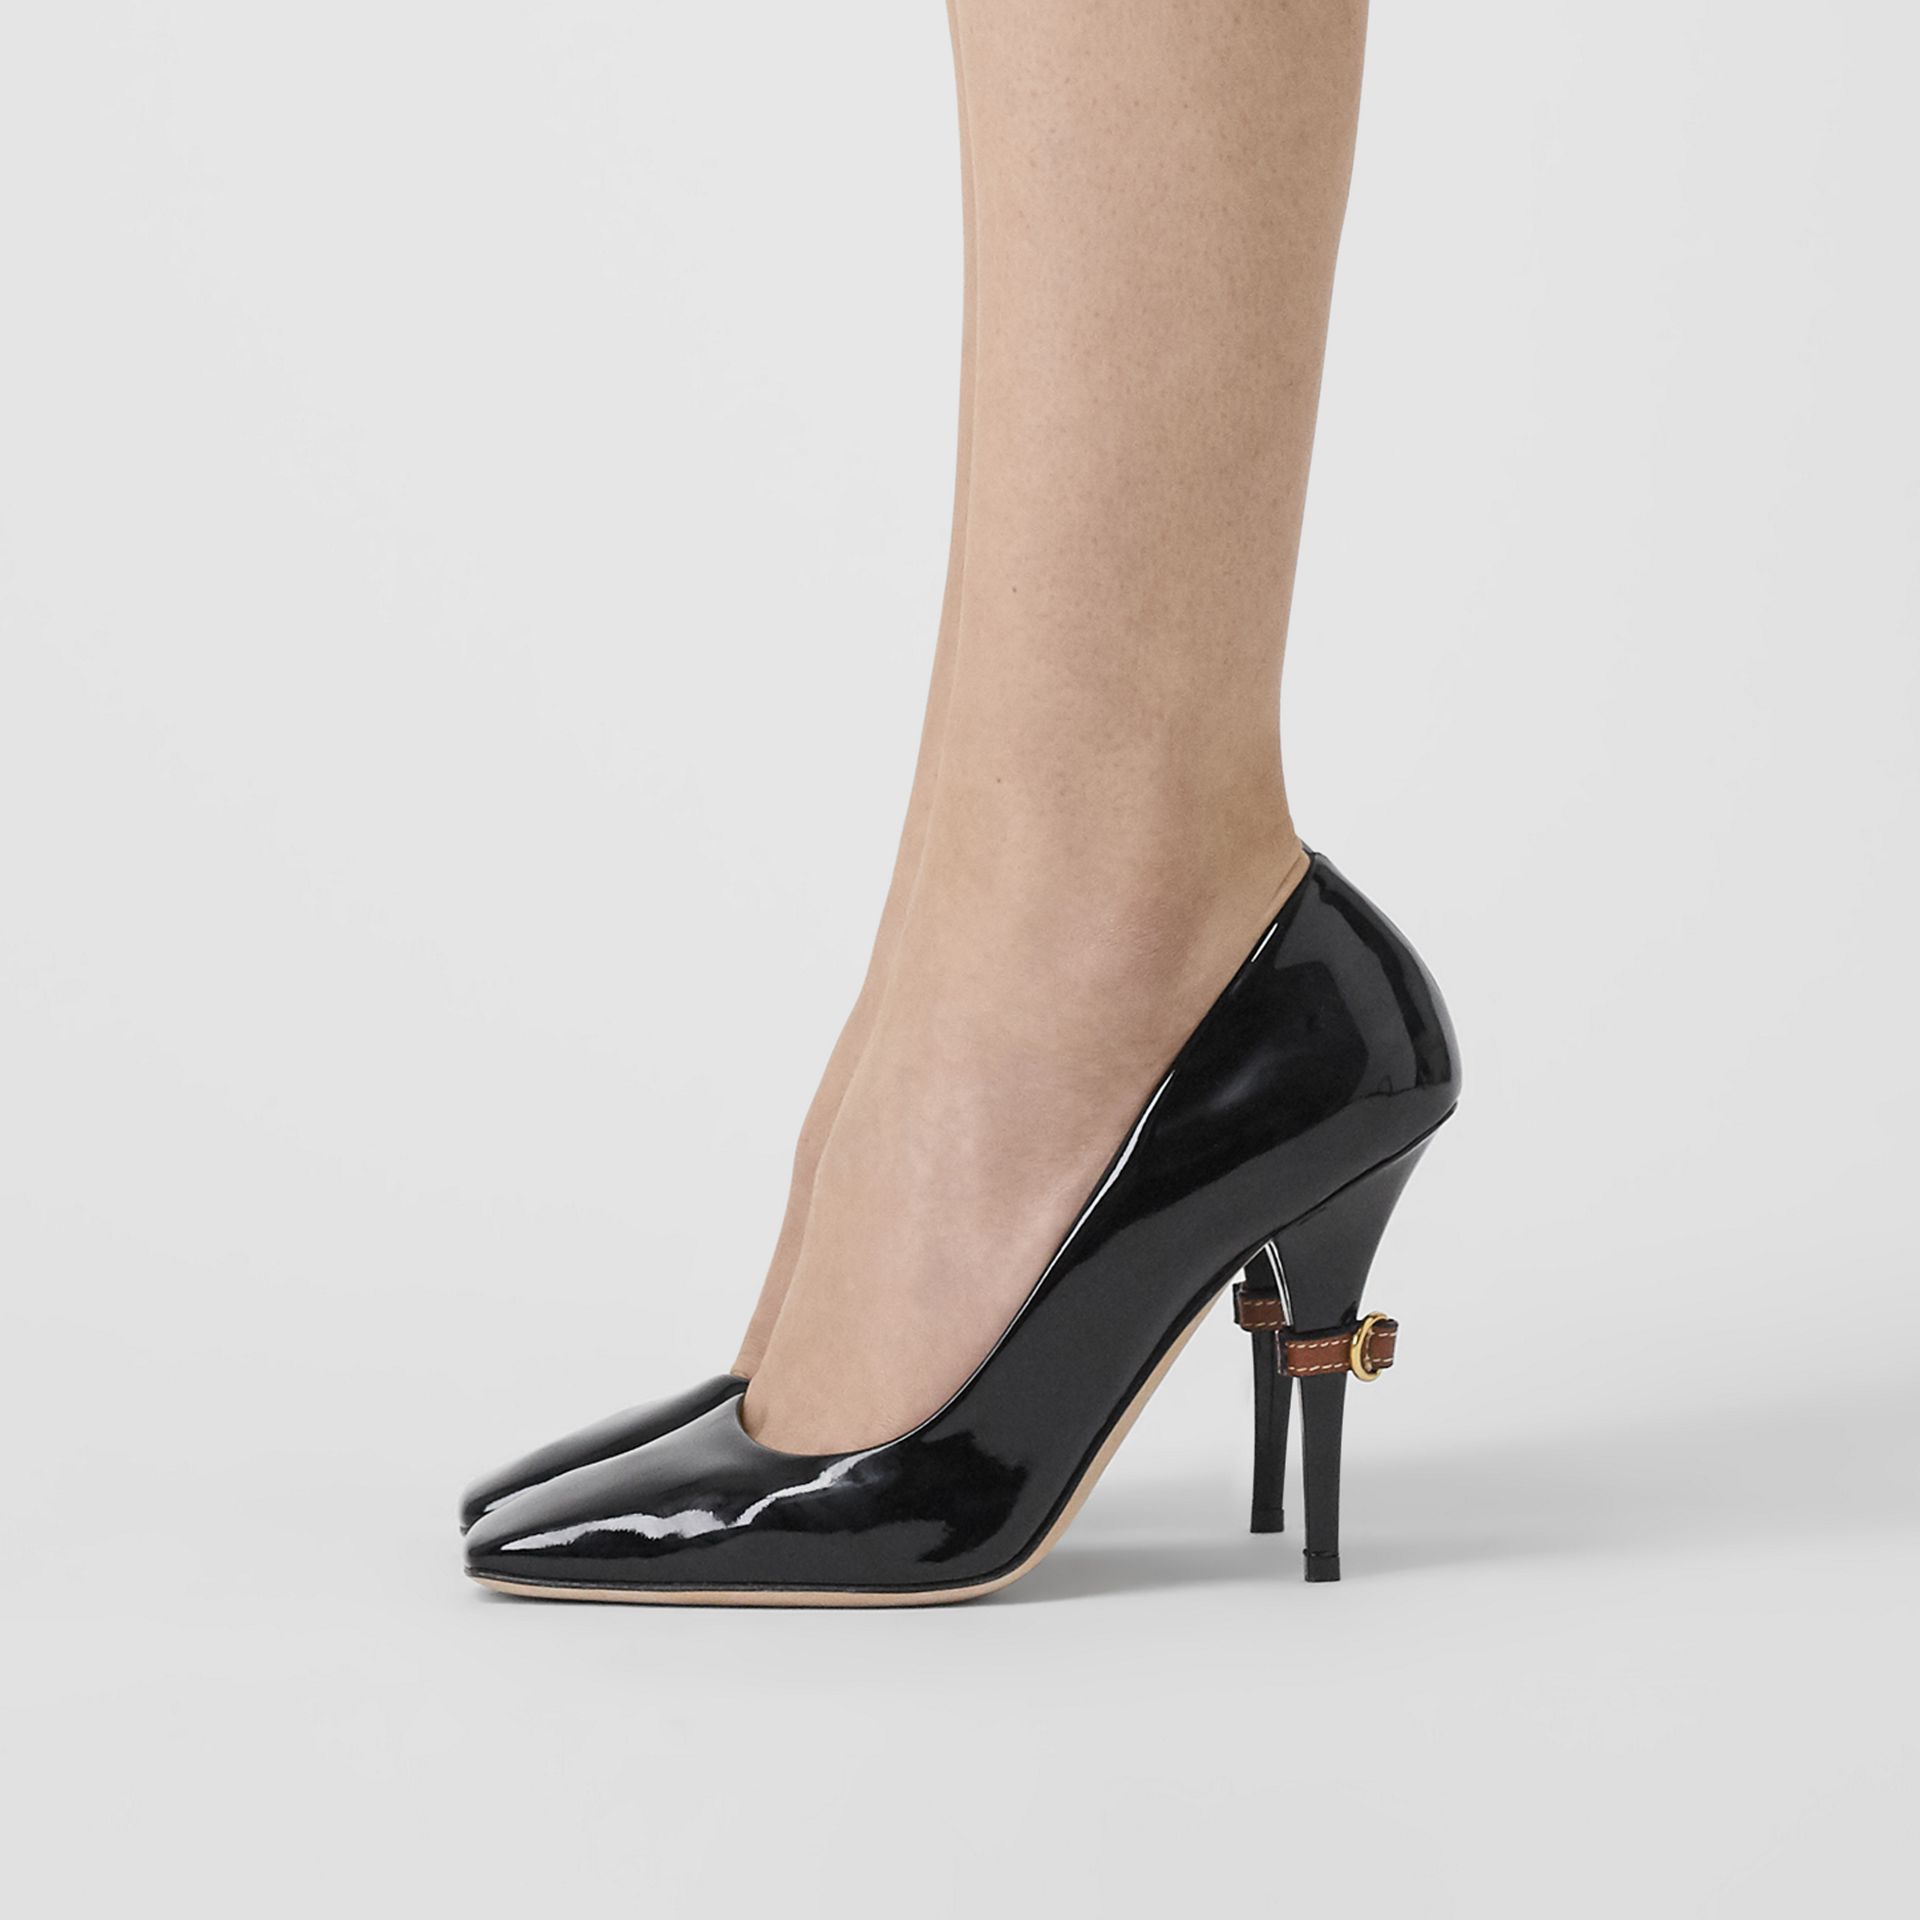 D-ring Detail Patent Leather Square-toe Pumps in Black - Women | Burberry Canada - gallery image 2